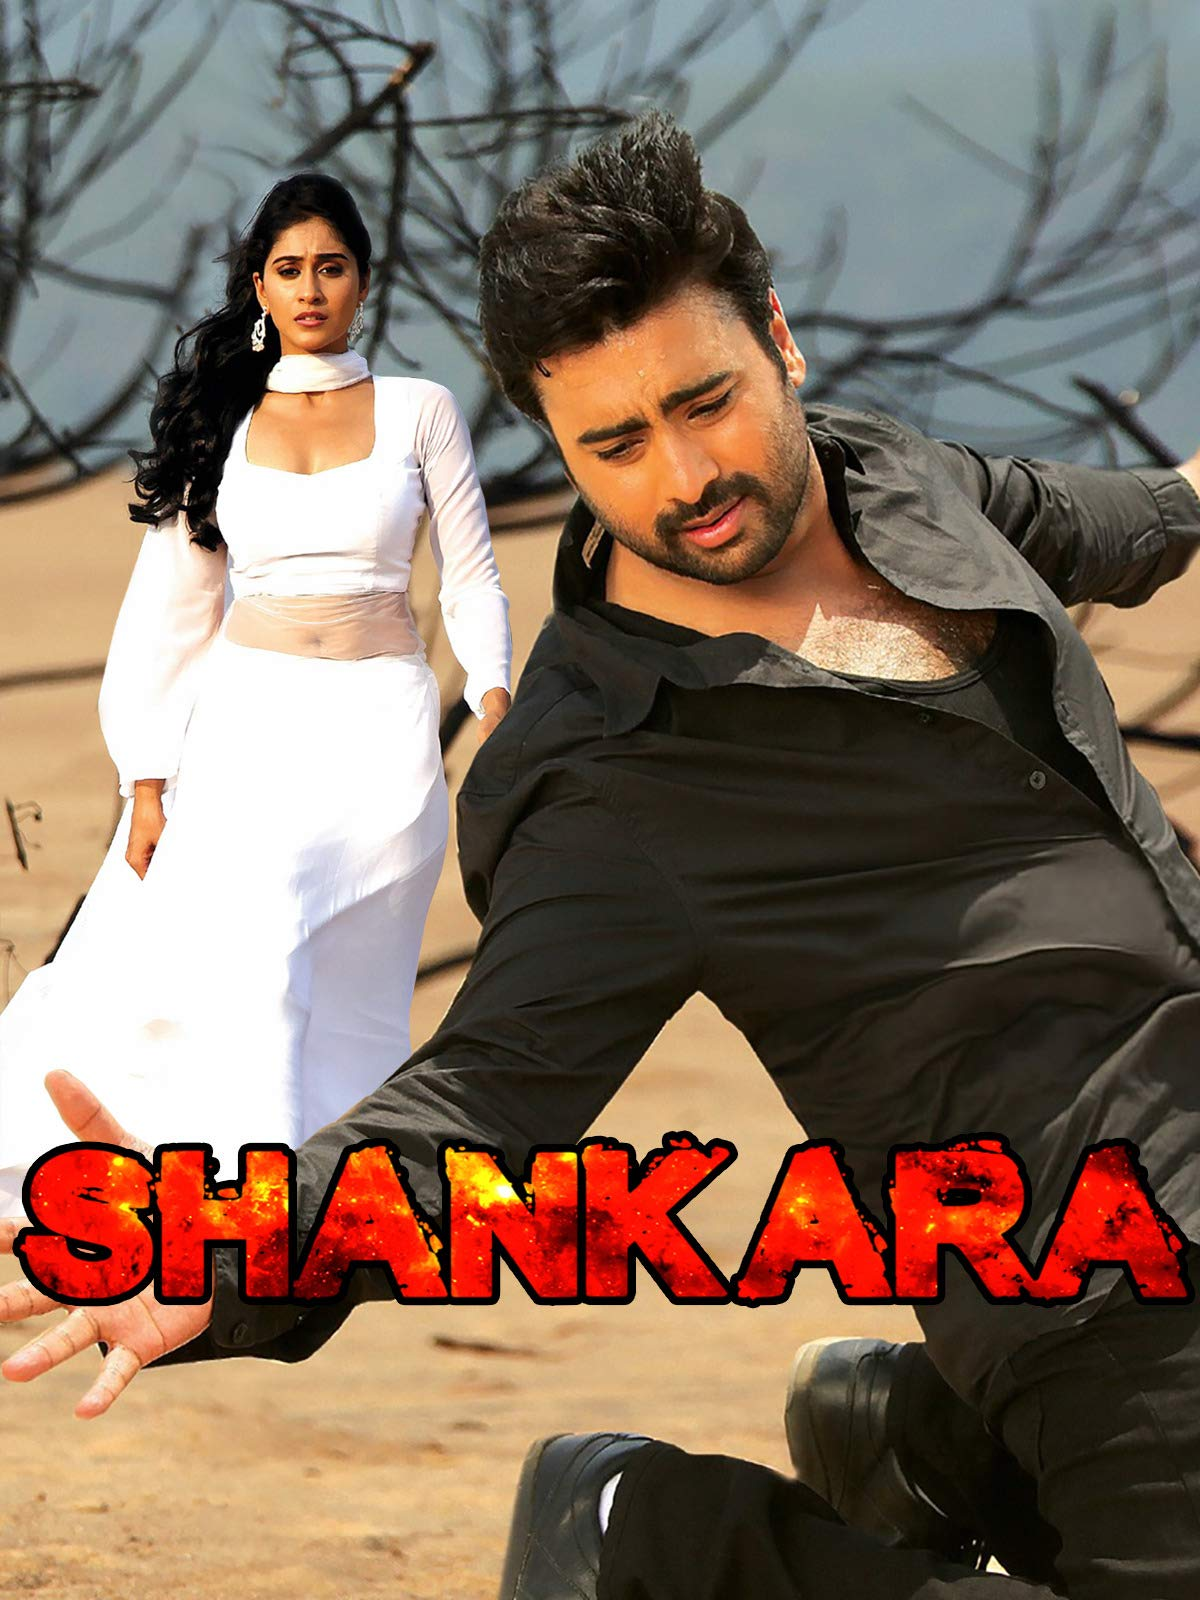 Shankara 2020 Hindi Dubbed Movie 480p HDRip 350MB x264 AAC